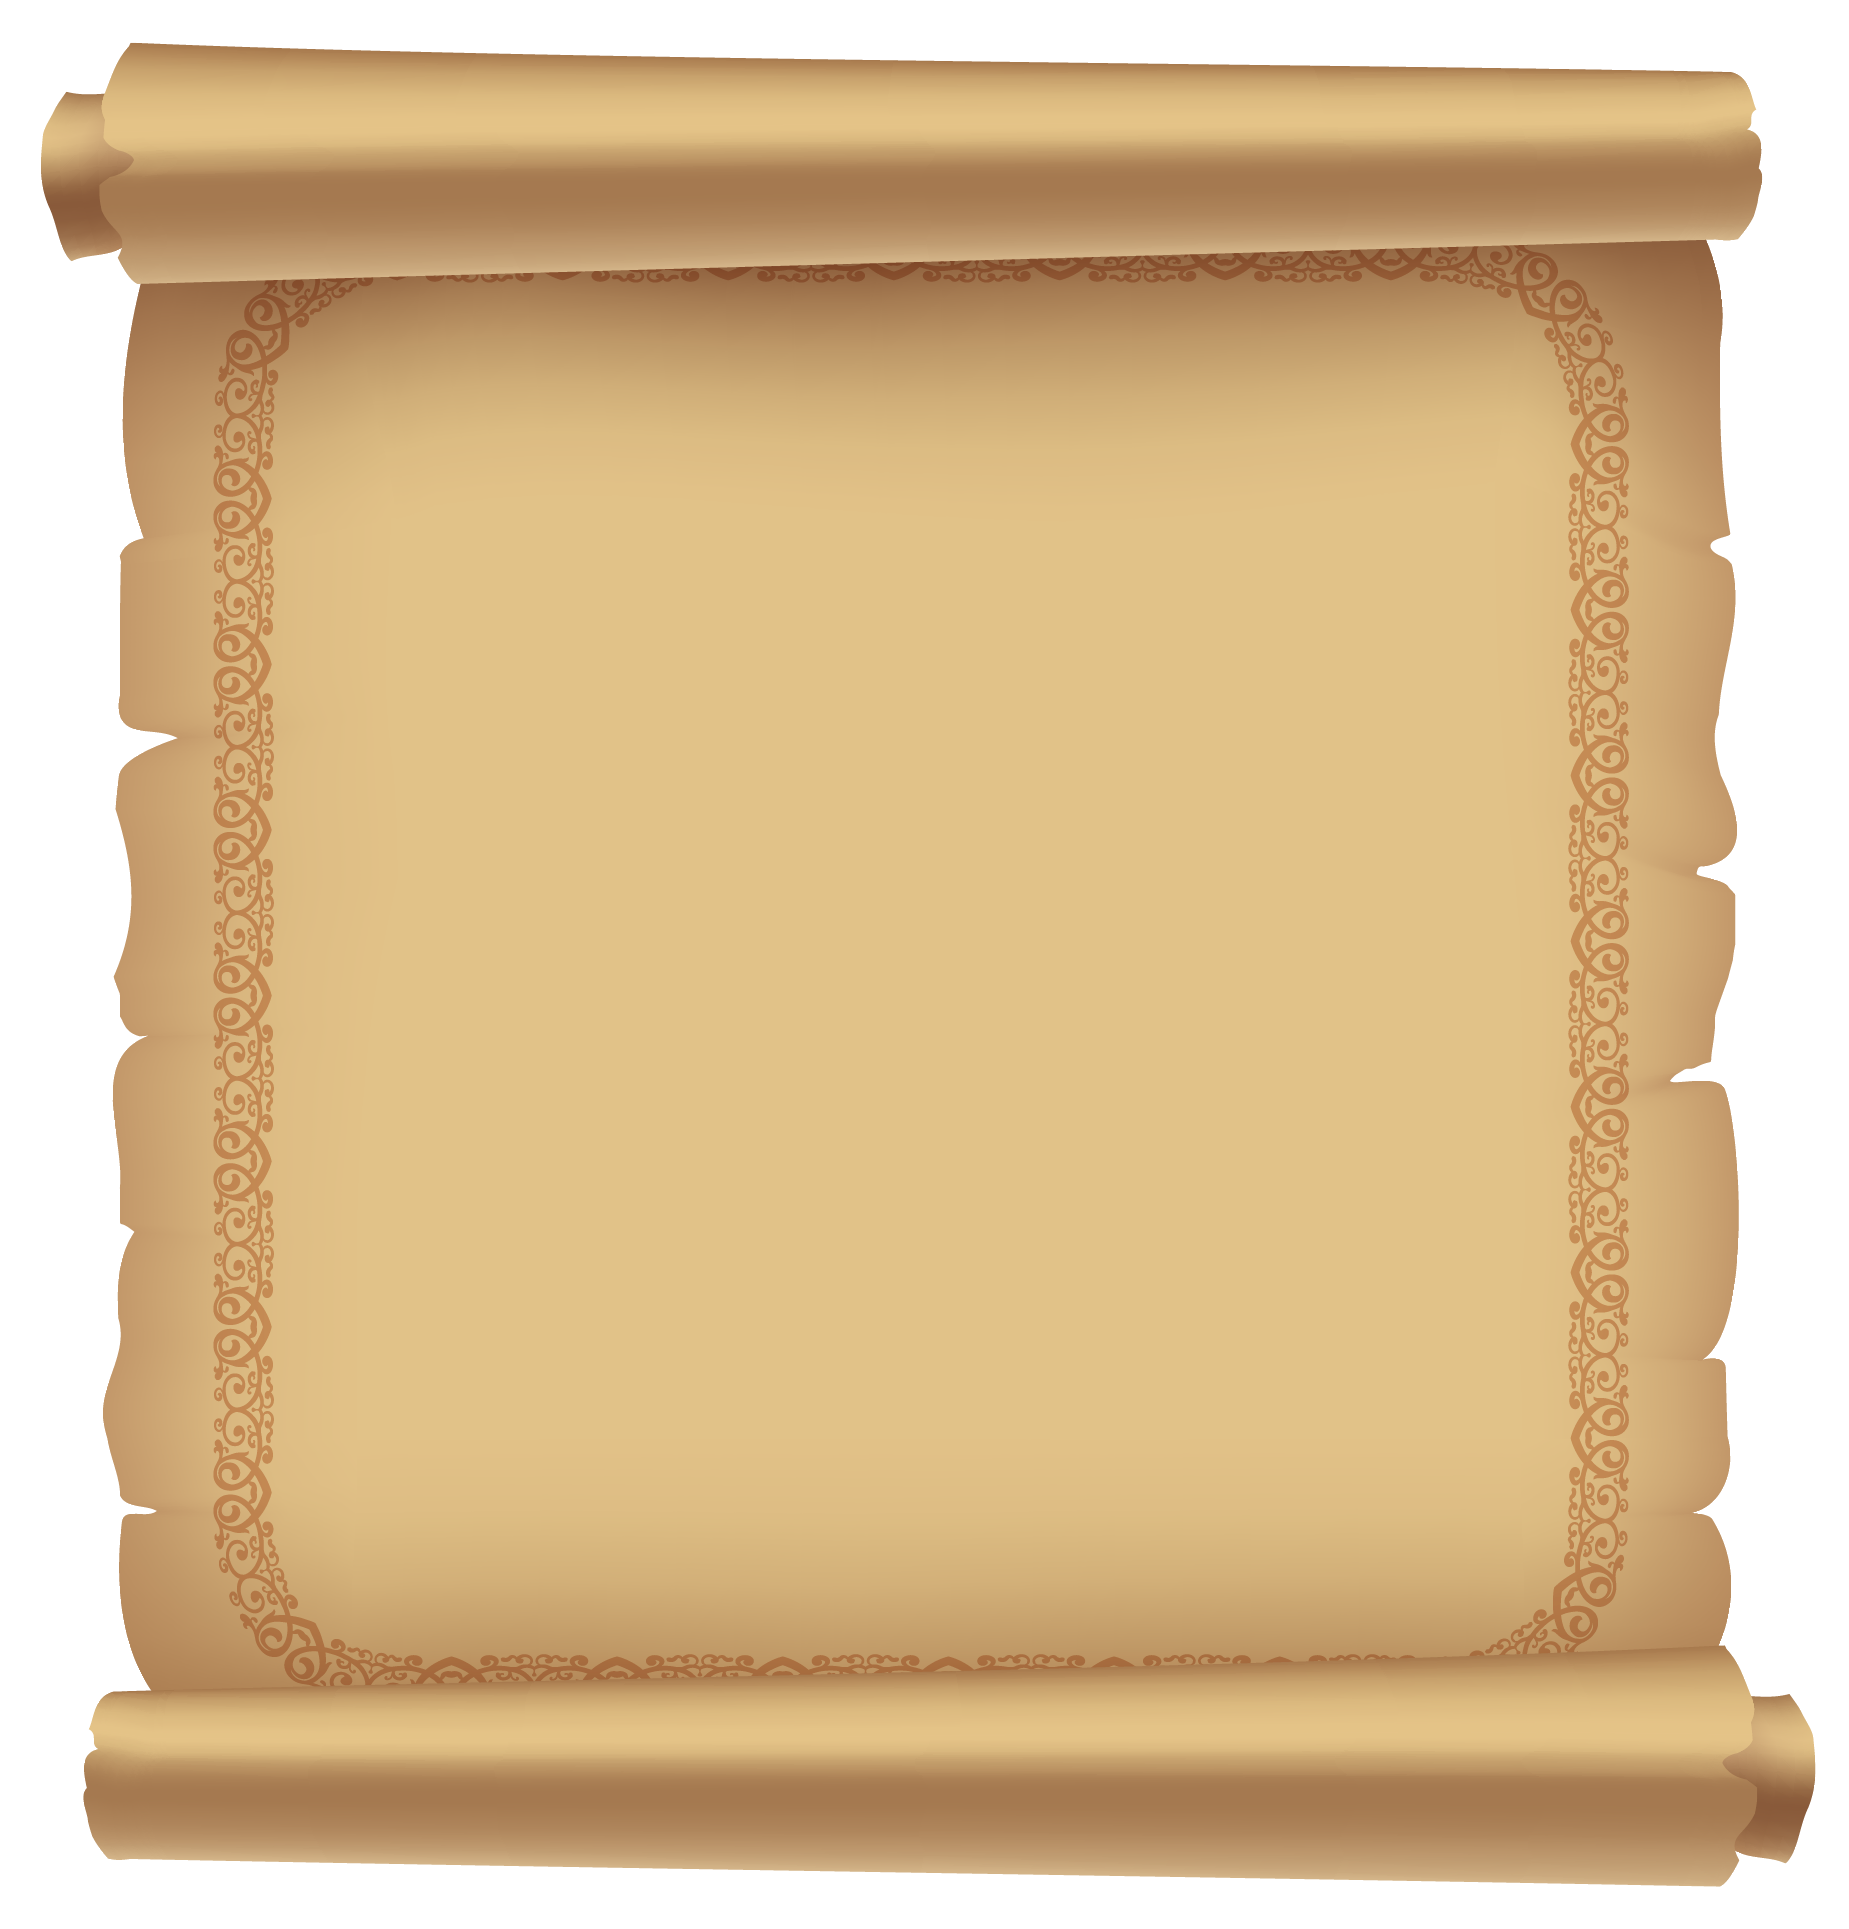 Decorative Ancient Scrolled Paper Png Clipart Picture Gallery Yopriceville High Quality Images And Transparent Png F Ancient Scroll Clip Art Ancient Paper